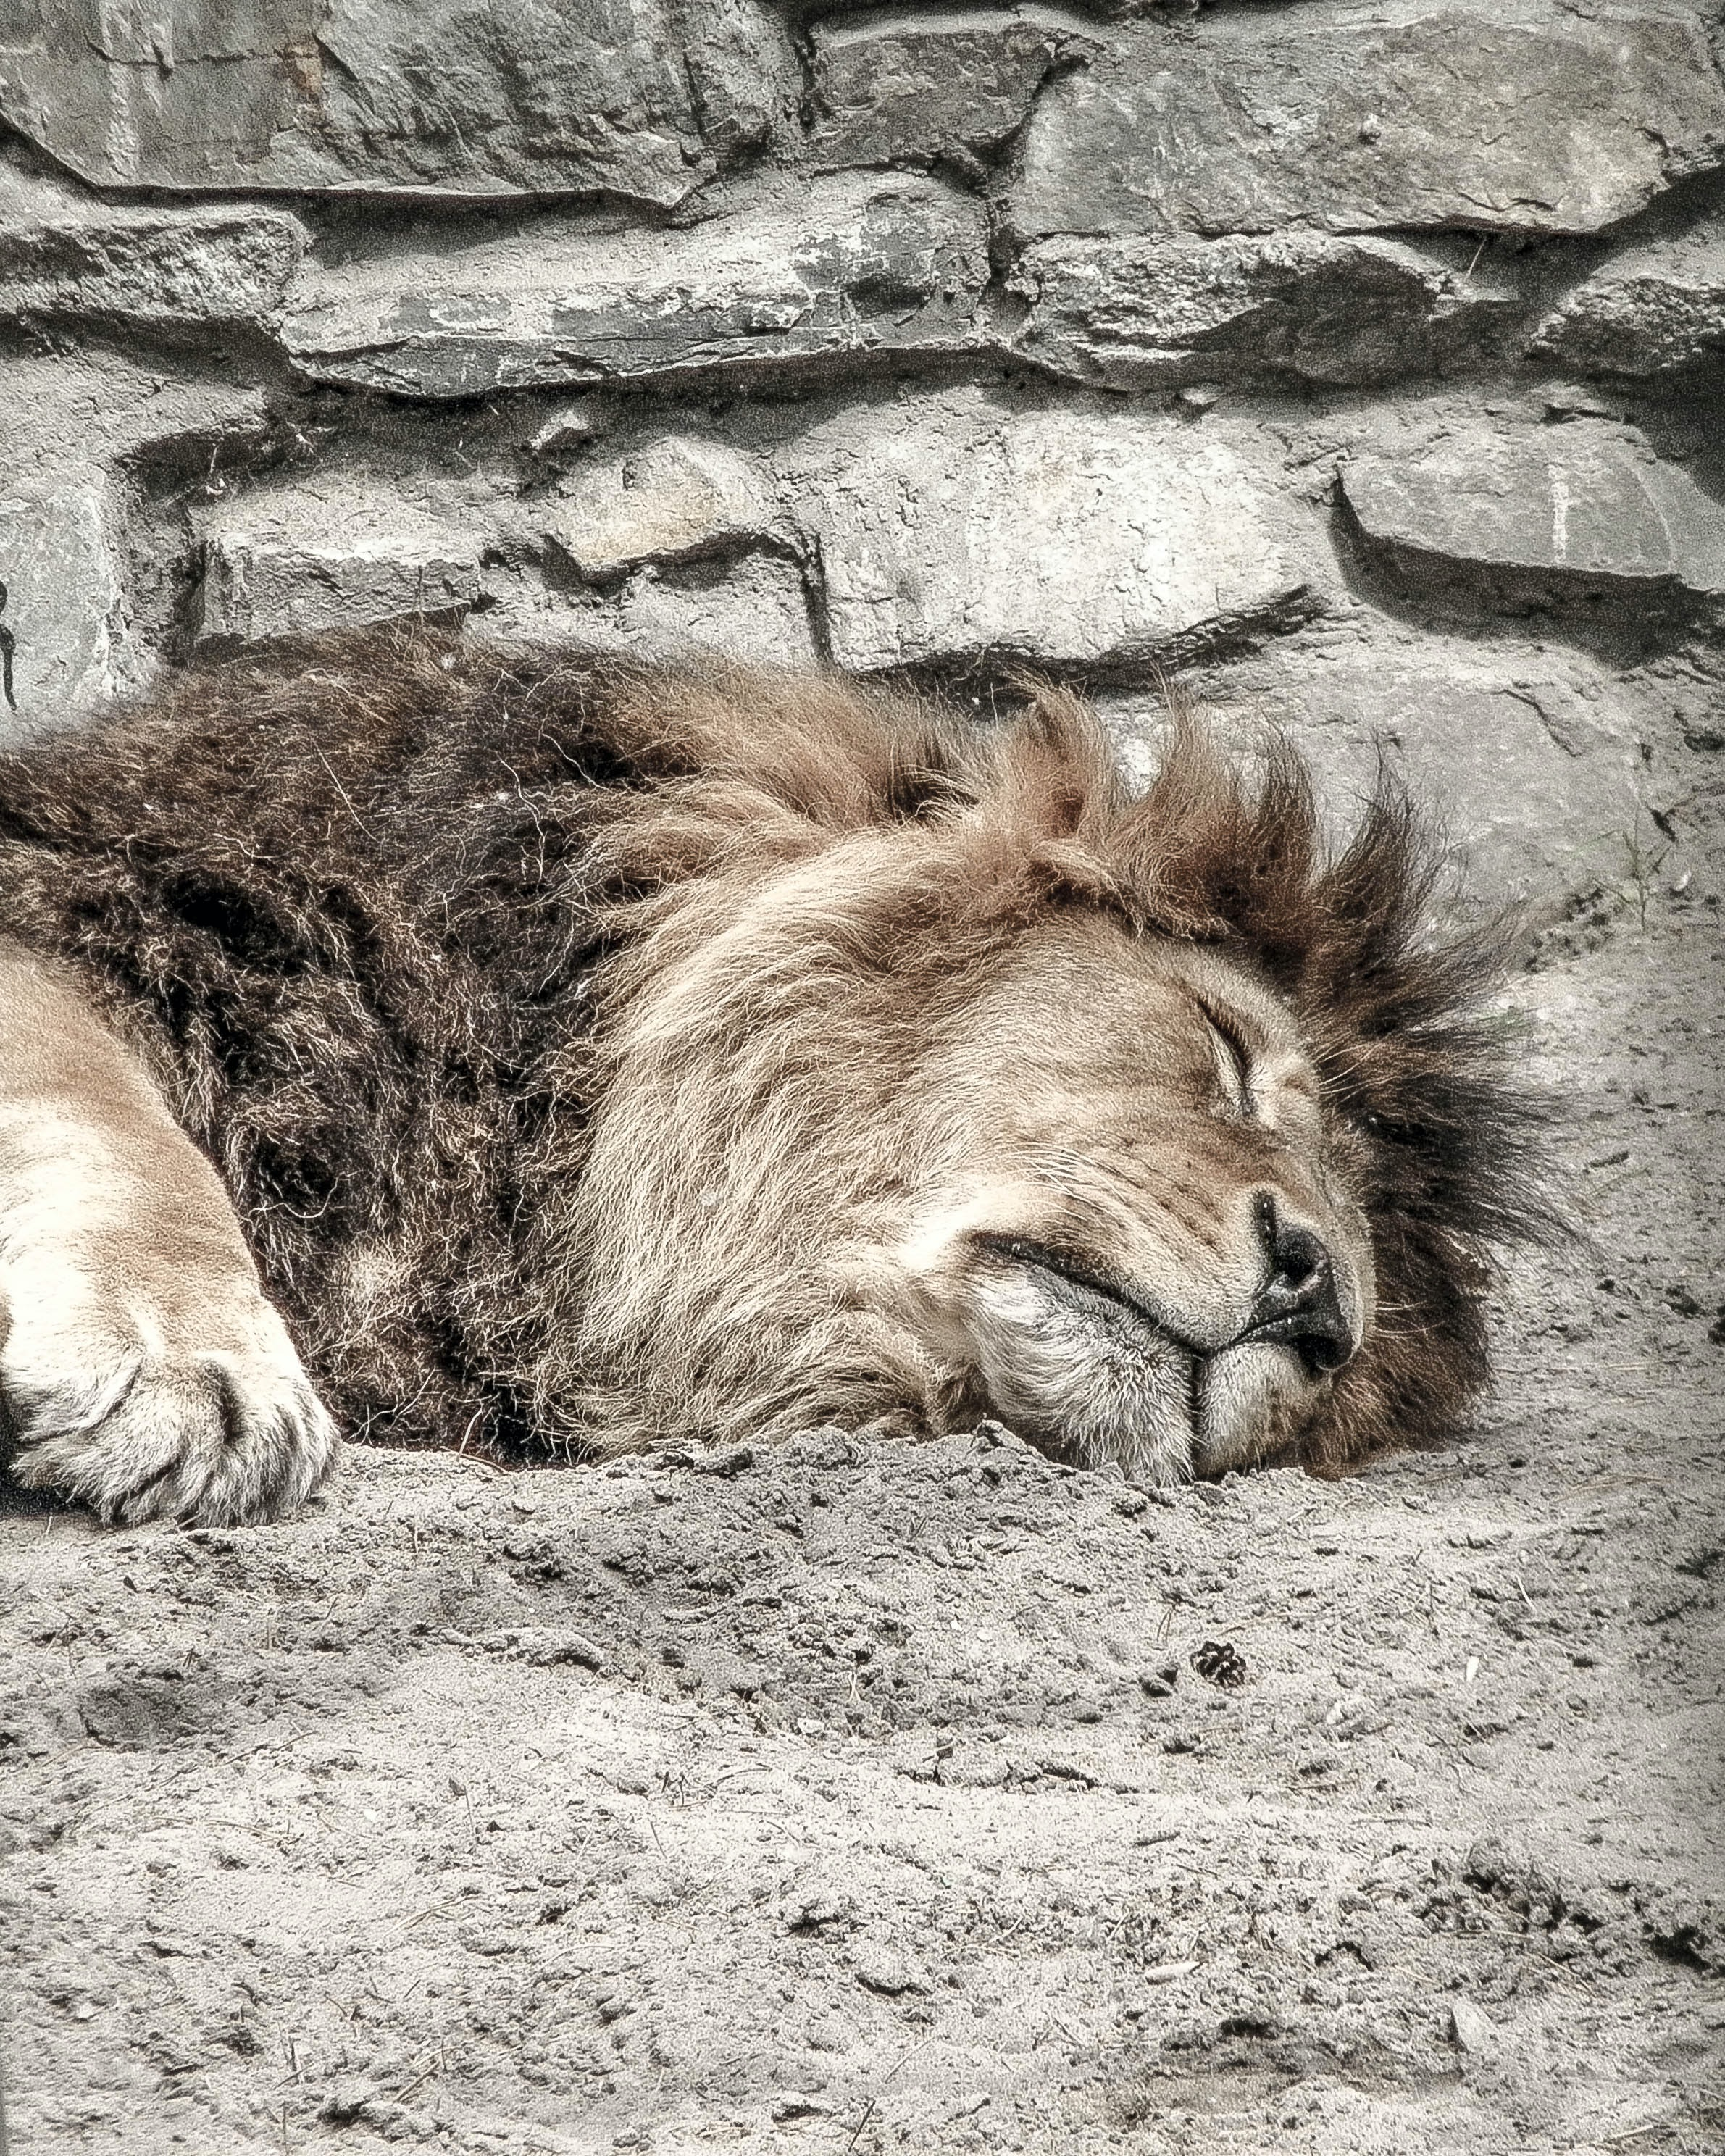 brown lion lying on gray soil during daytime